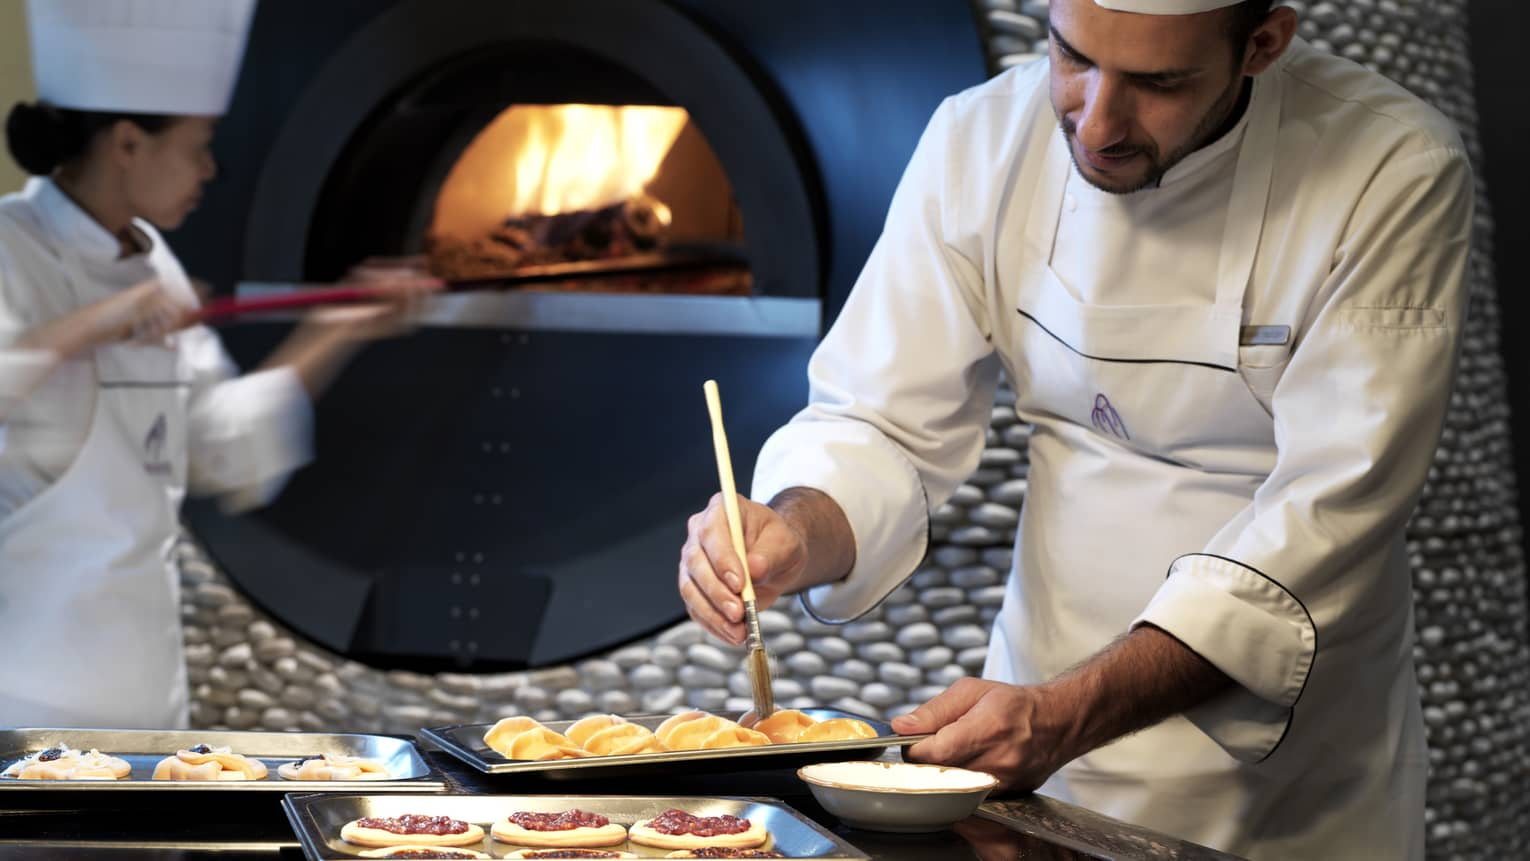 Chef in white uniform, apron brushes pastries in front of wood-burning oven